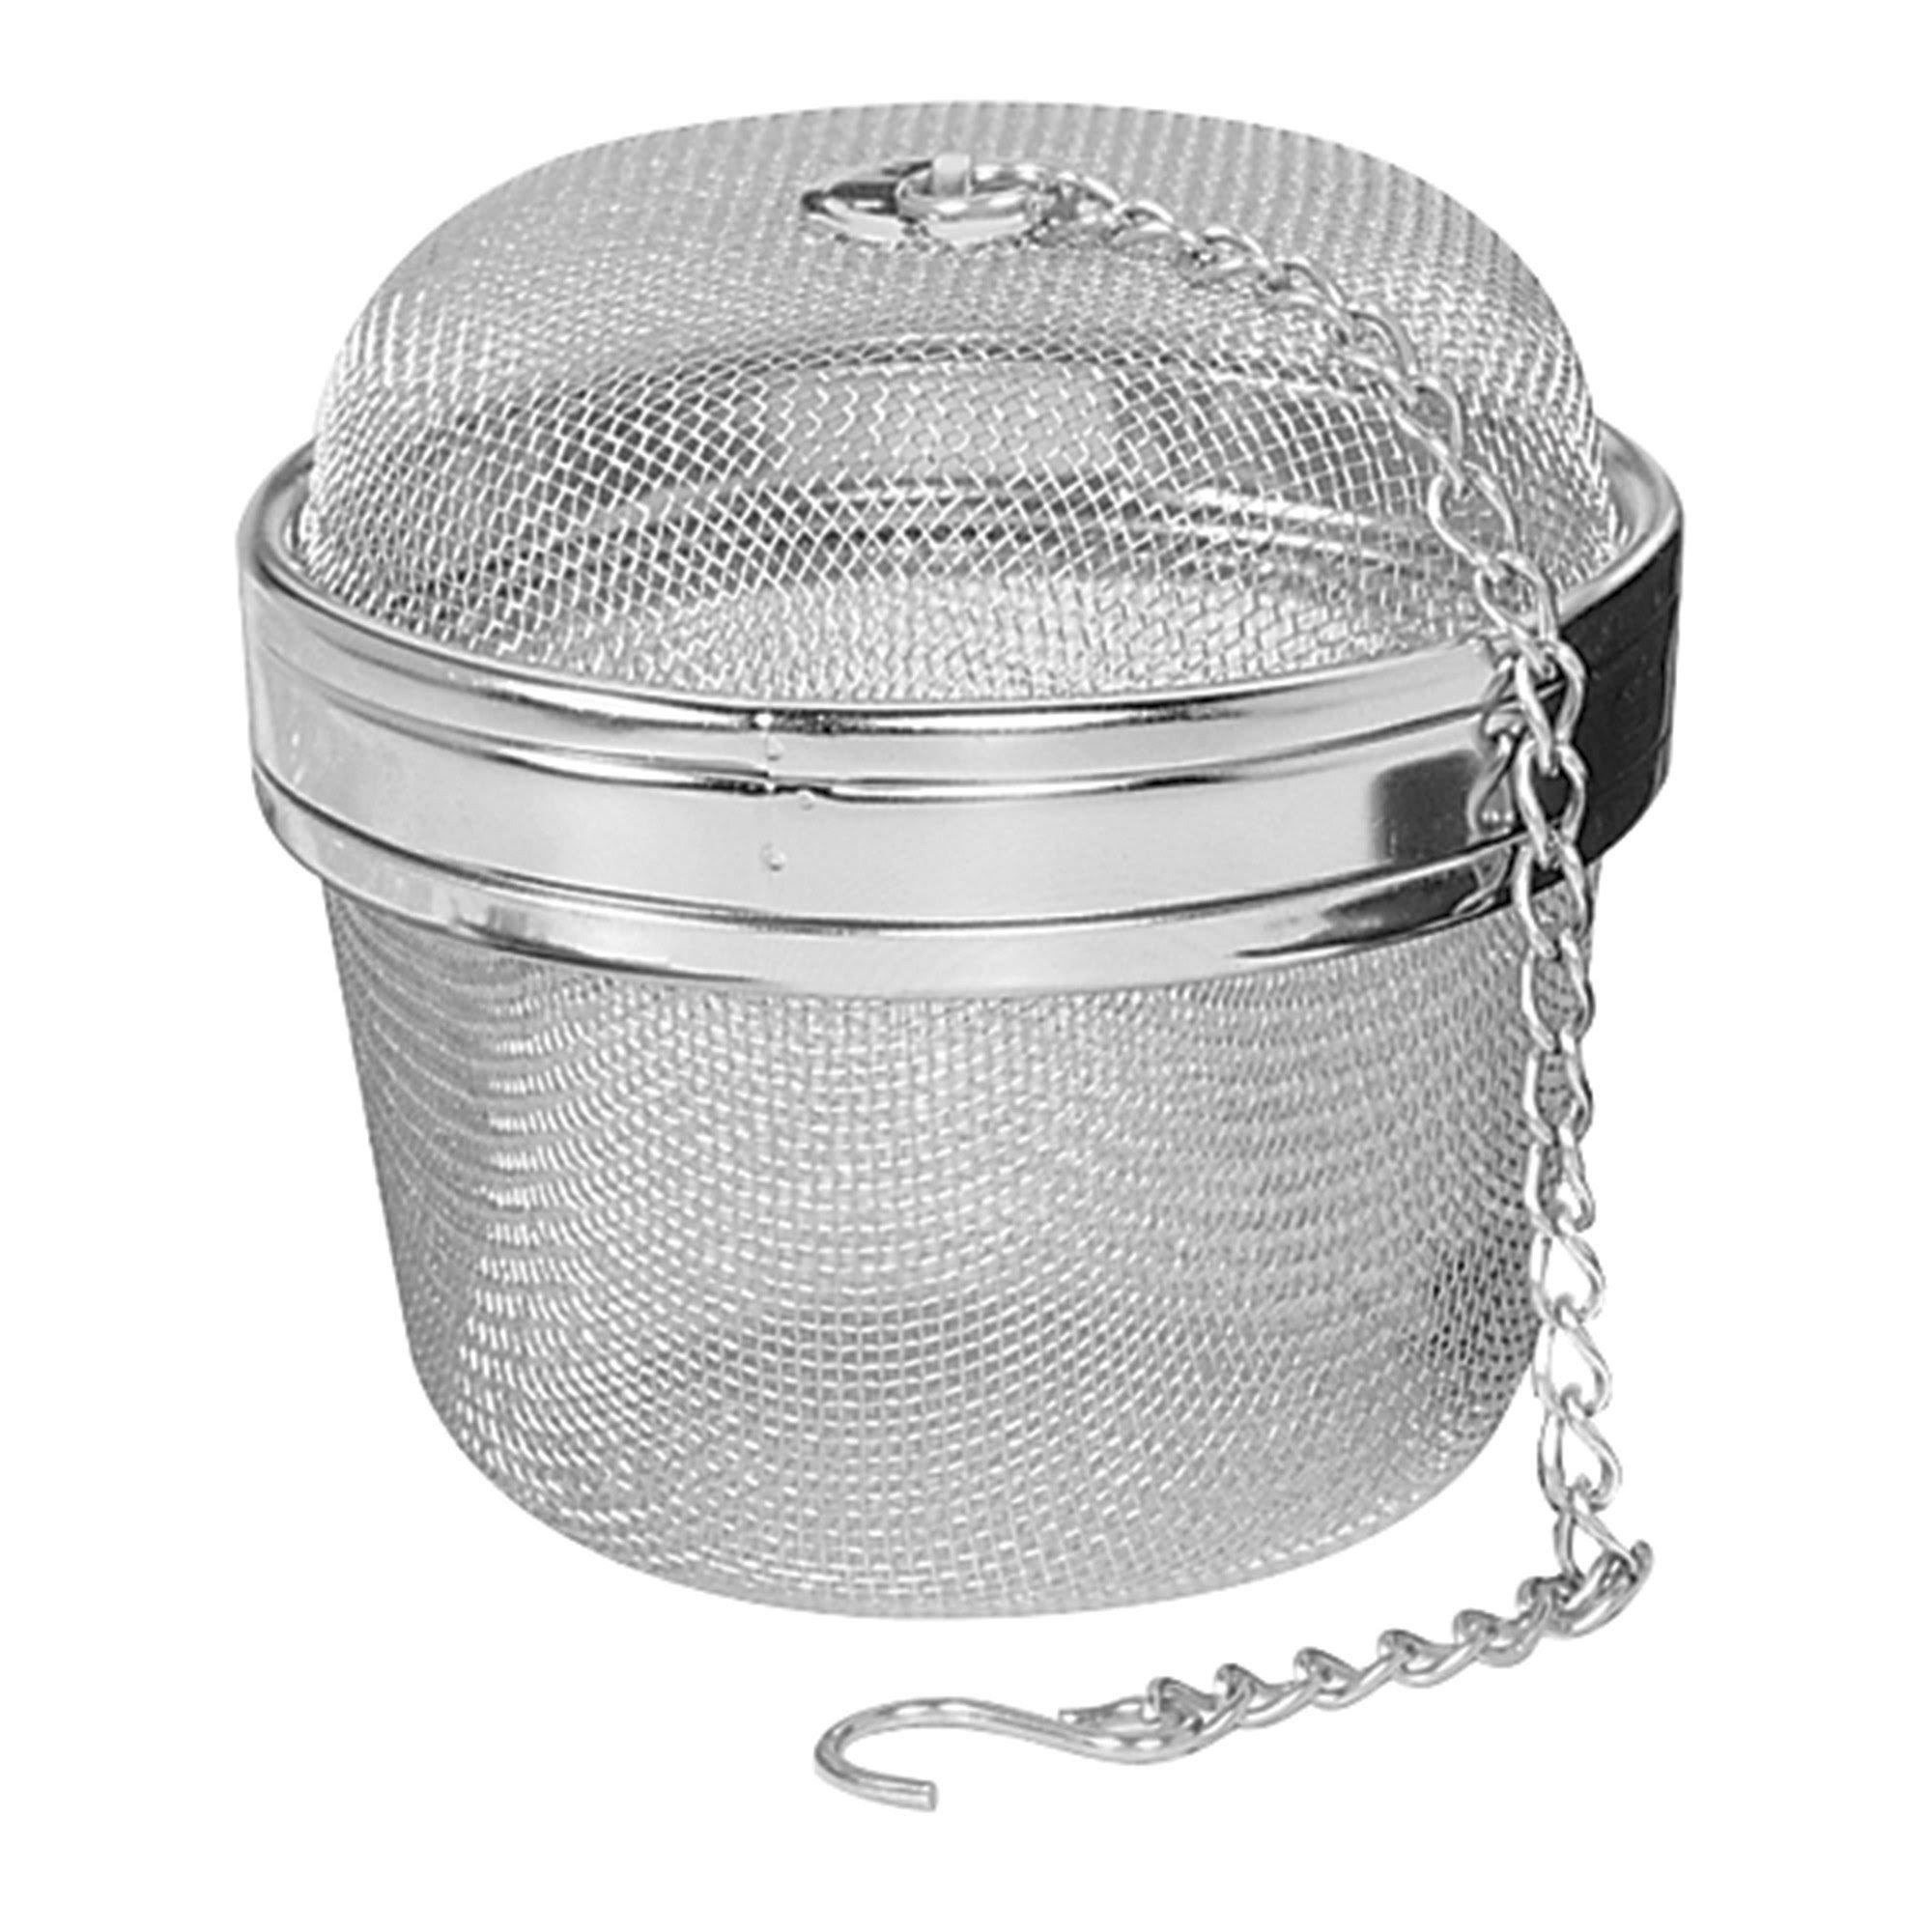 "Fox Run 3"" Stainless Steel Teaball"